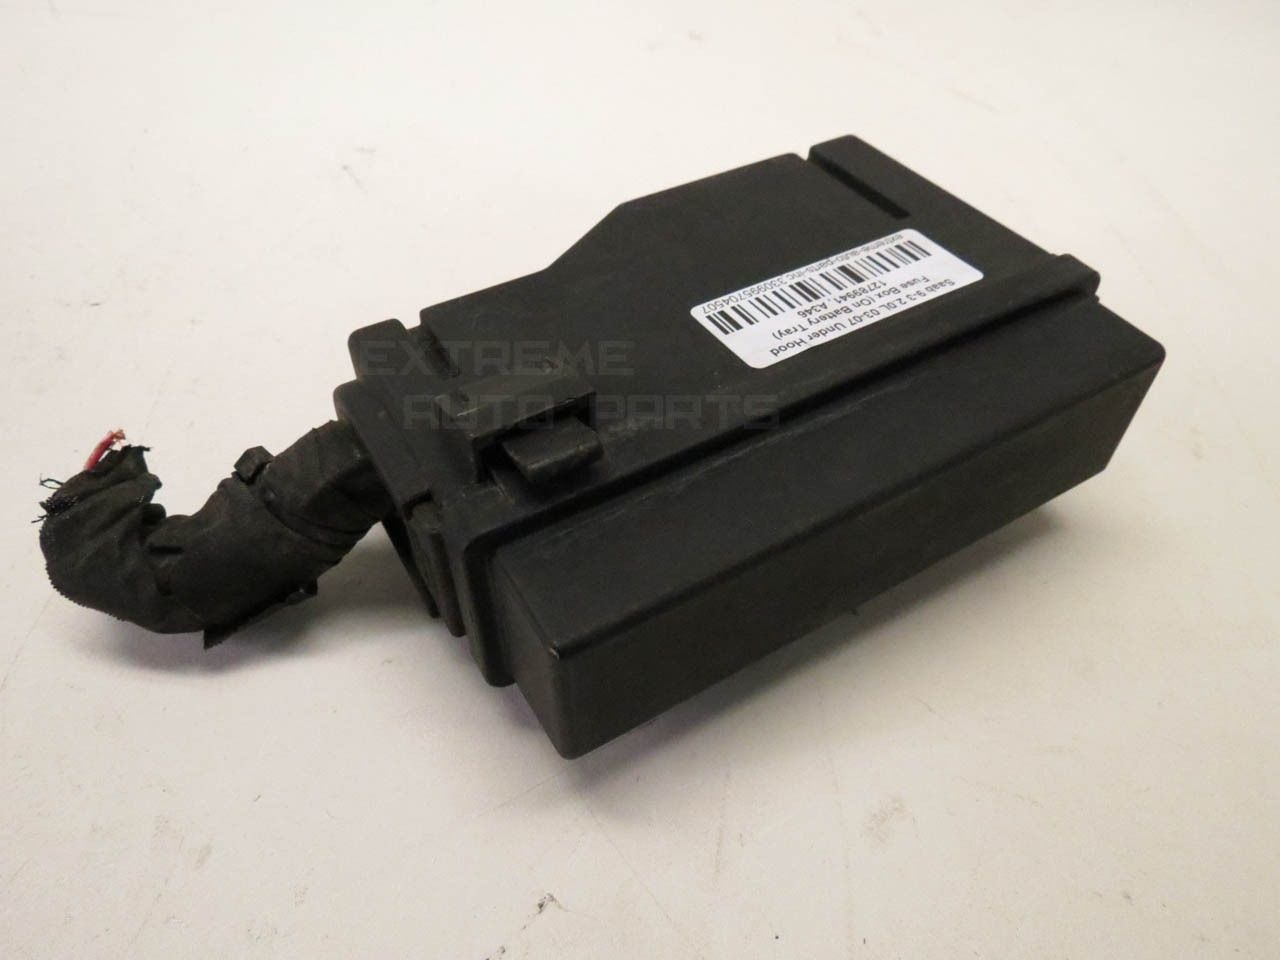 hight resolution of saab 9 3 12788777 secondary under hood fuse box on battery tray 03 04 05 06 07 extreme auto parts